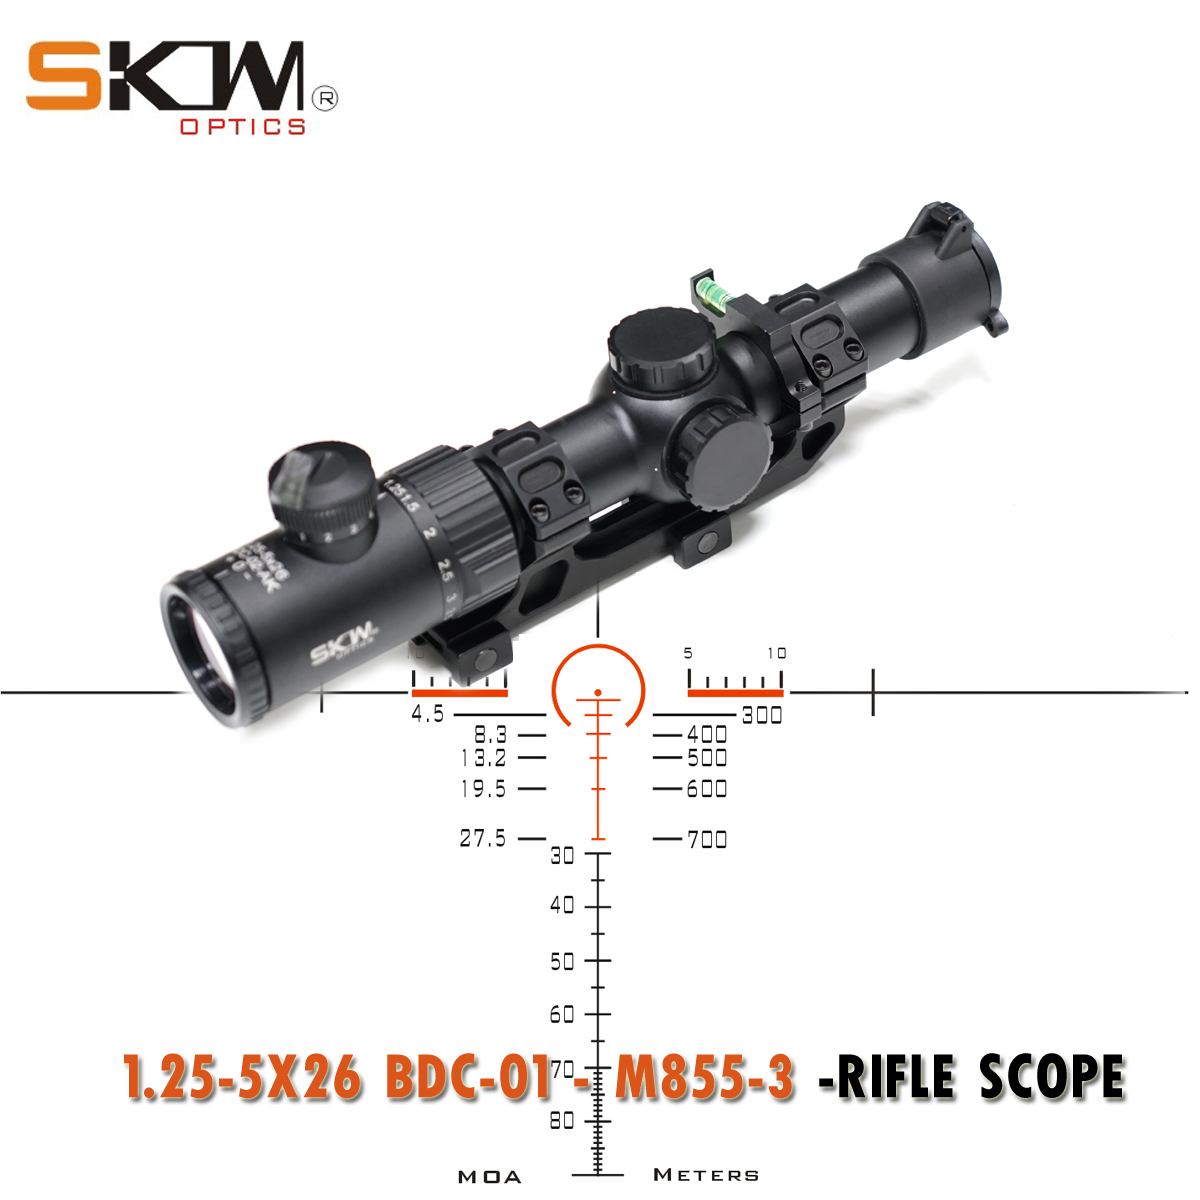 SKWoptics1.25-5x26bdc-01-M855-3 Tactical riflescopes Hunting AK AR,M4 sight compact rifle scope ar15 BDC reticle 30 scope ring image